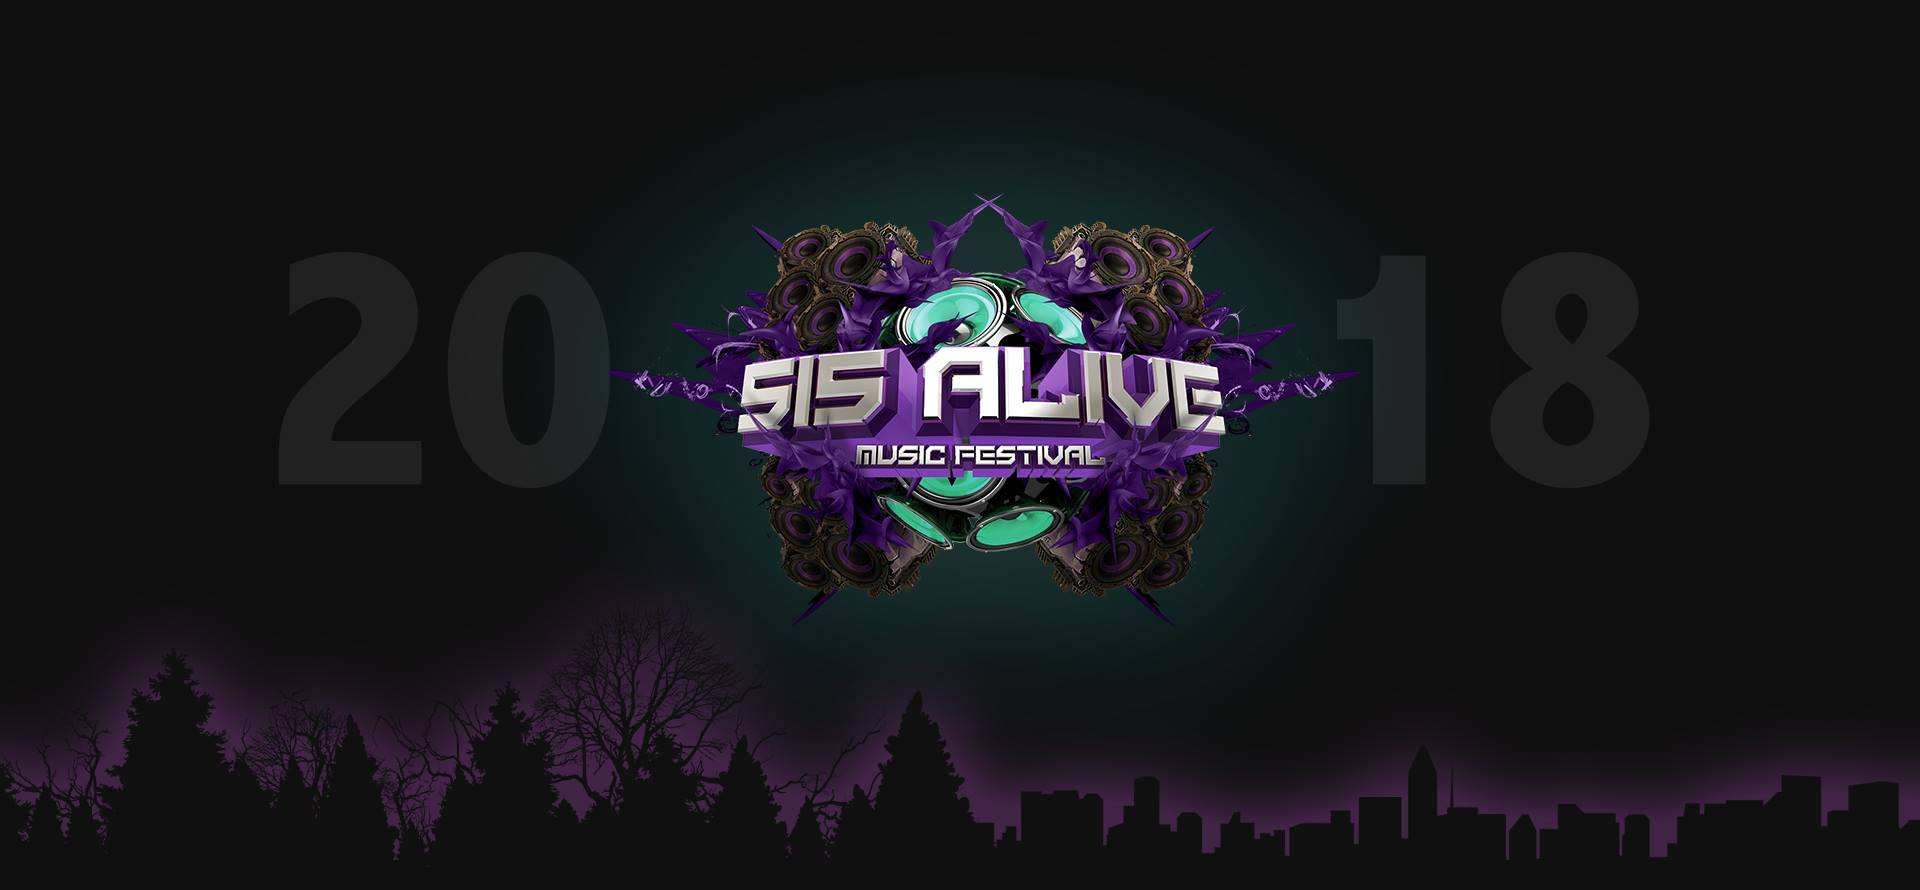 Best is yet to come at the 16th Annual 515 Alive Music Festival